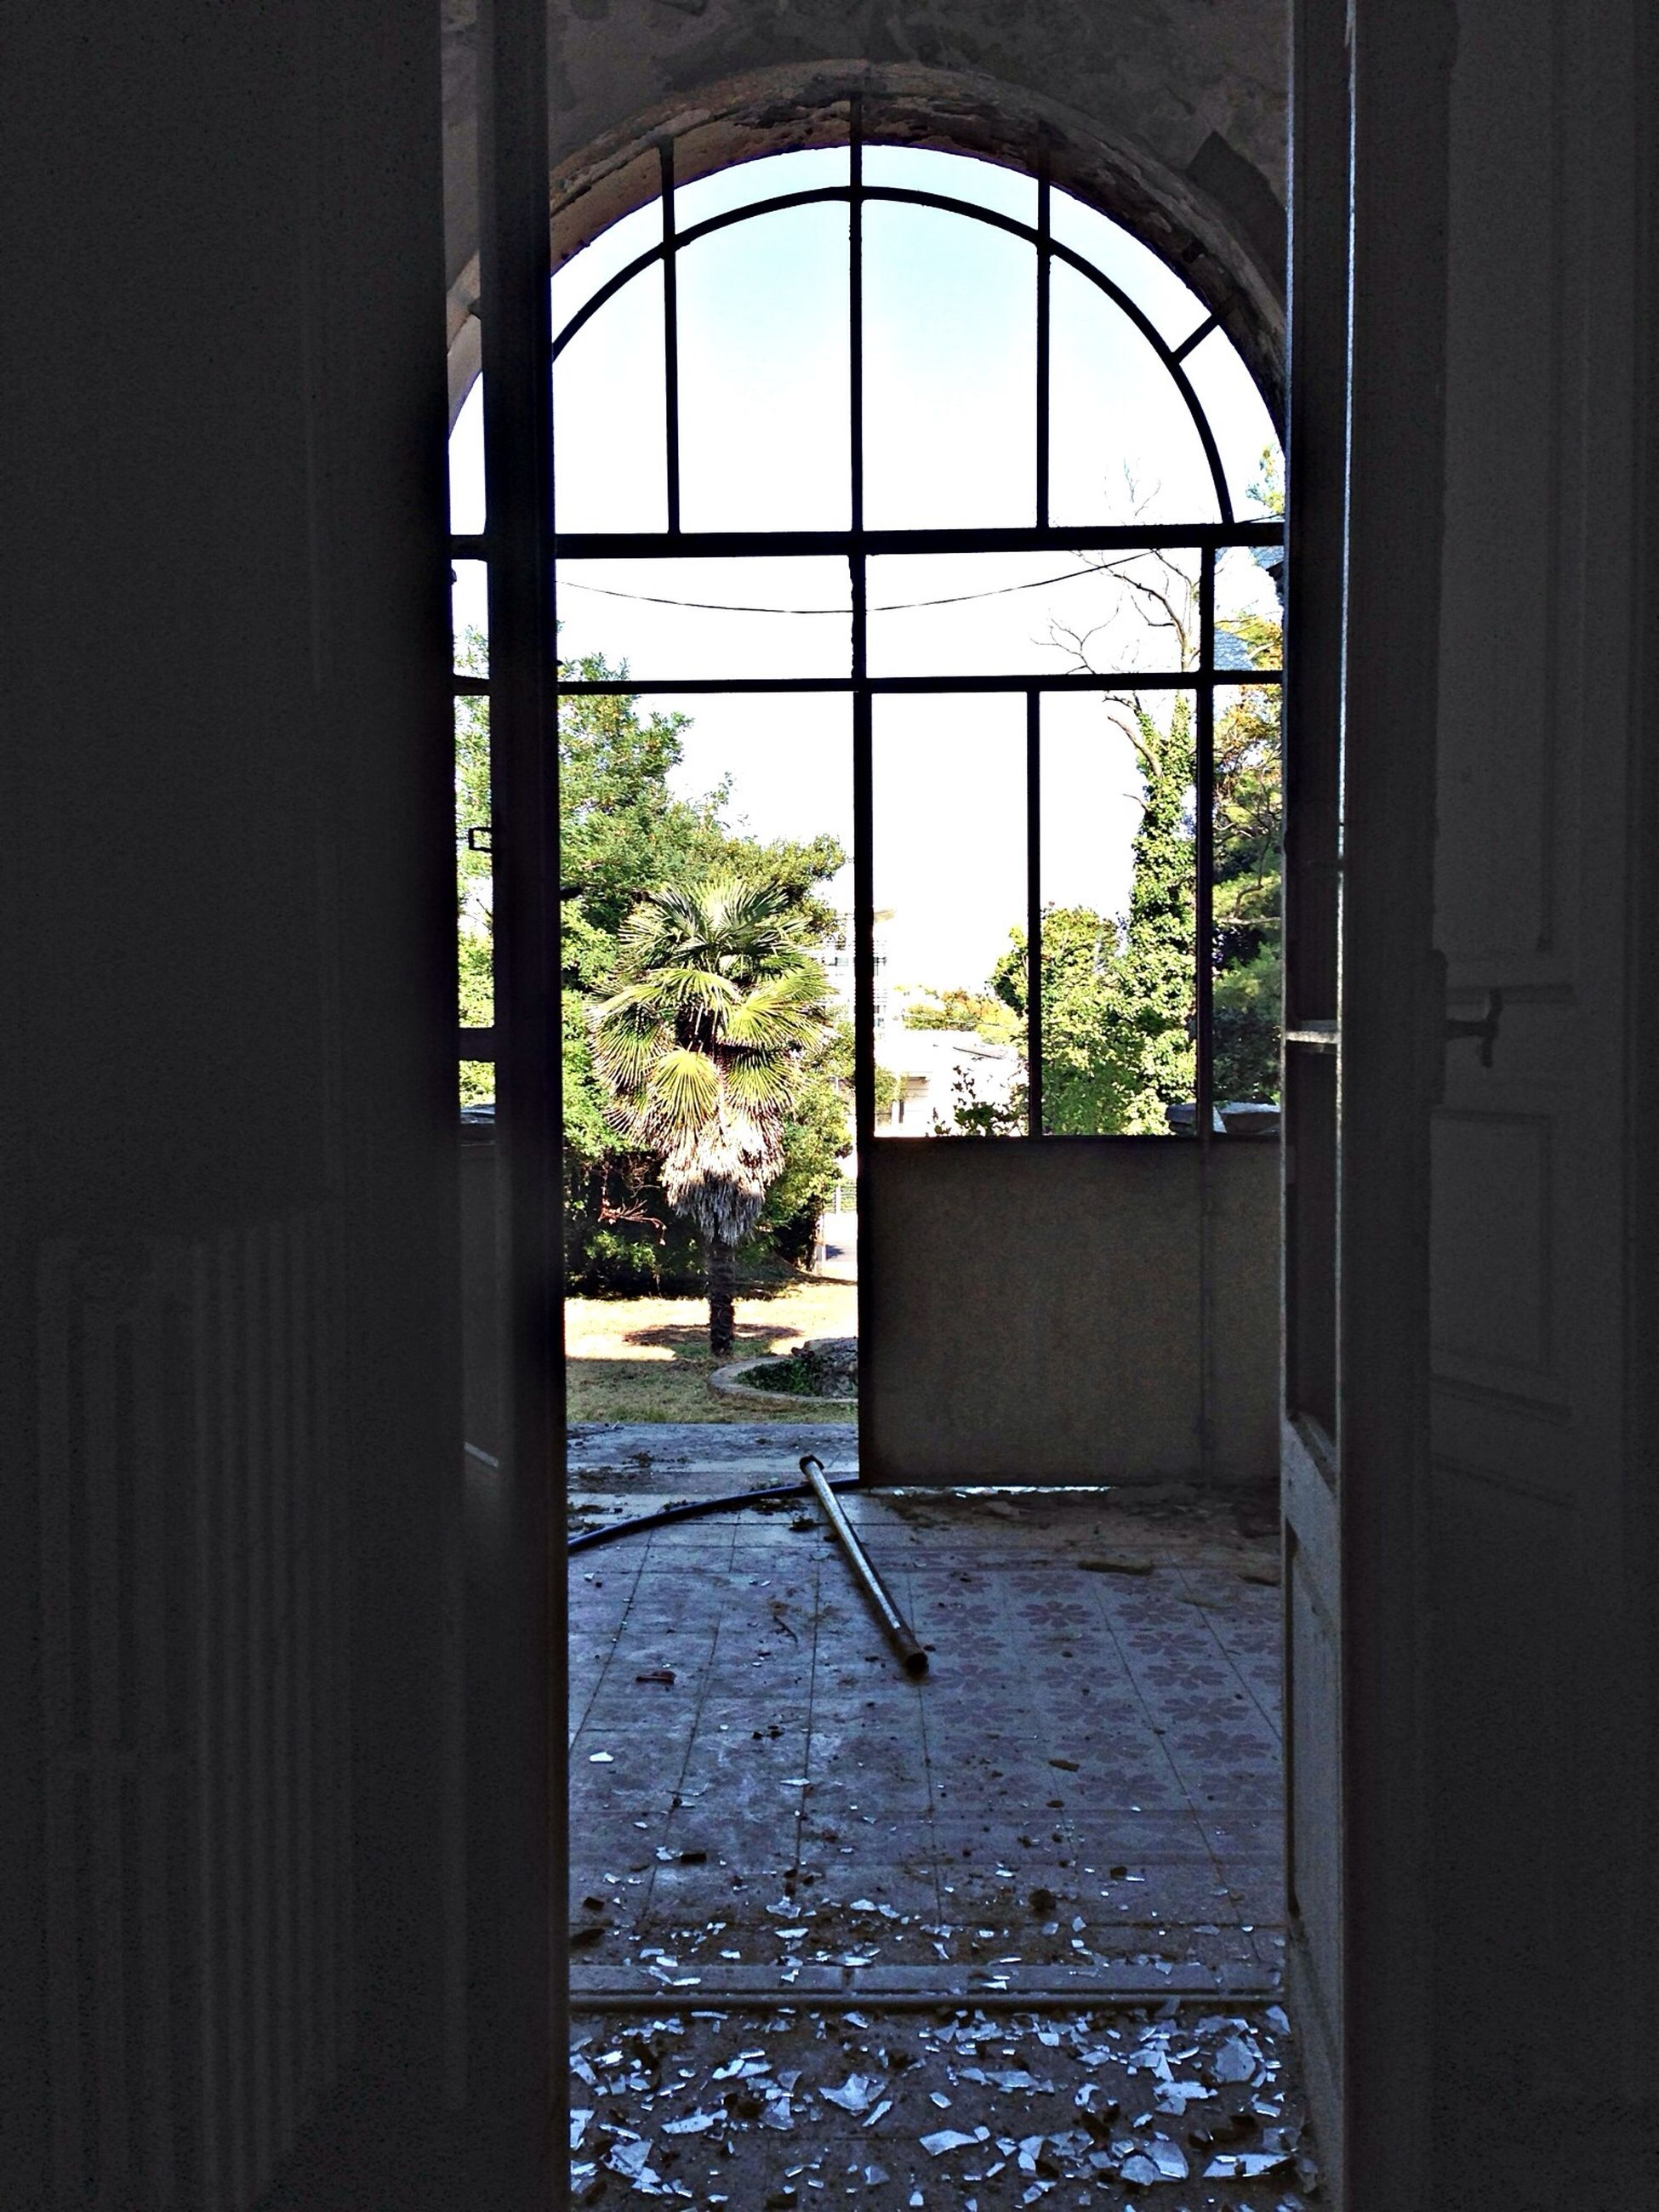 window, indoors, architecture, built structure, door, glass - material, tree, house, transparent, open, closed, arch, day, entrance, building exterior, home interior, sunlight, no people, plant, absence